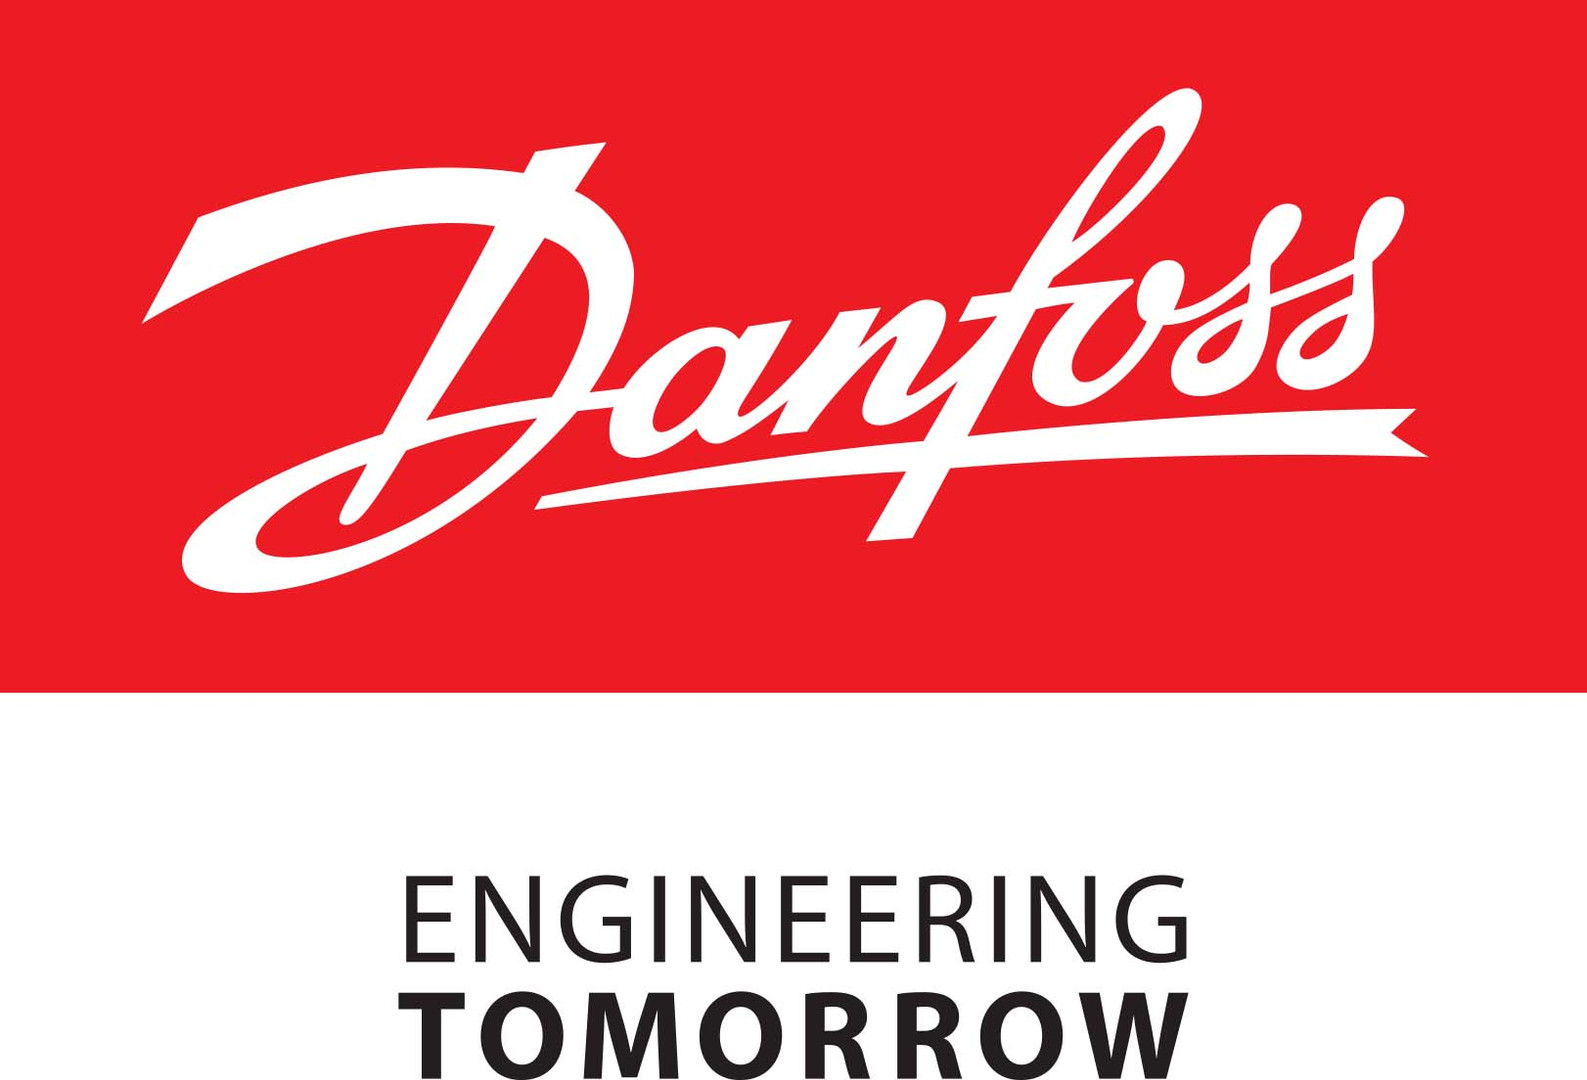 Logo Danfoss Engineering Tomorrow.jpg